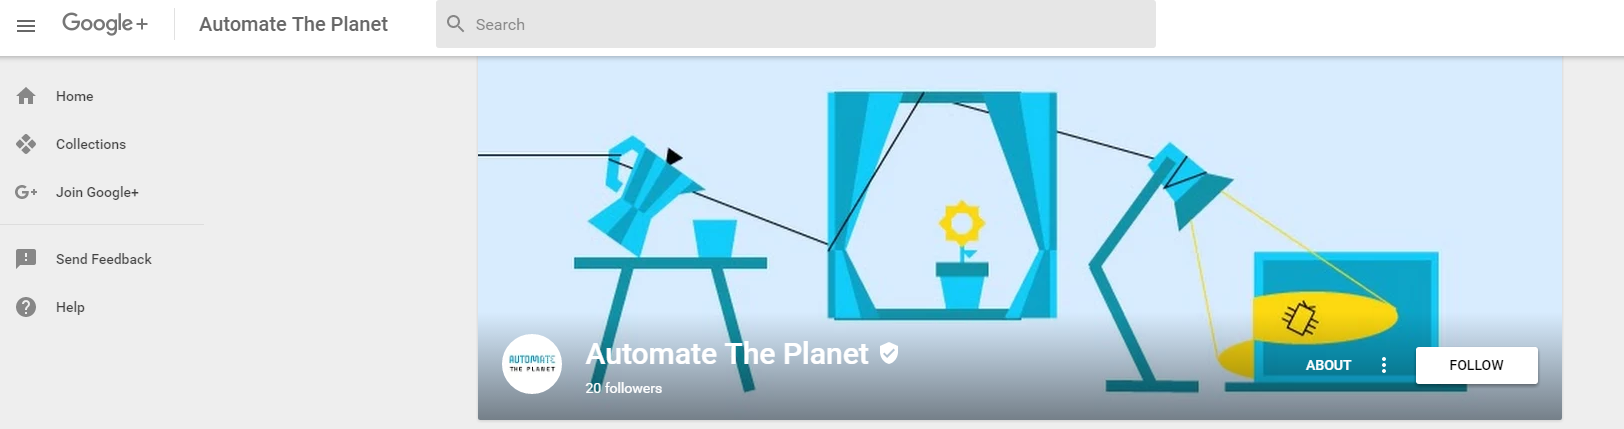 Automate The Planet G+